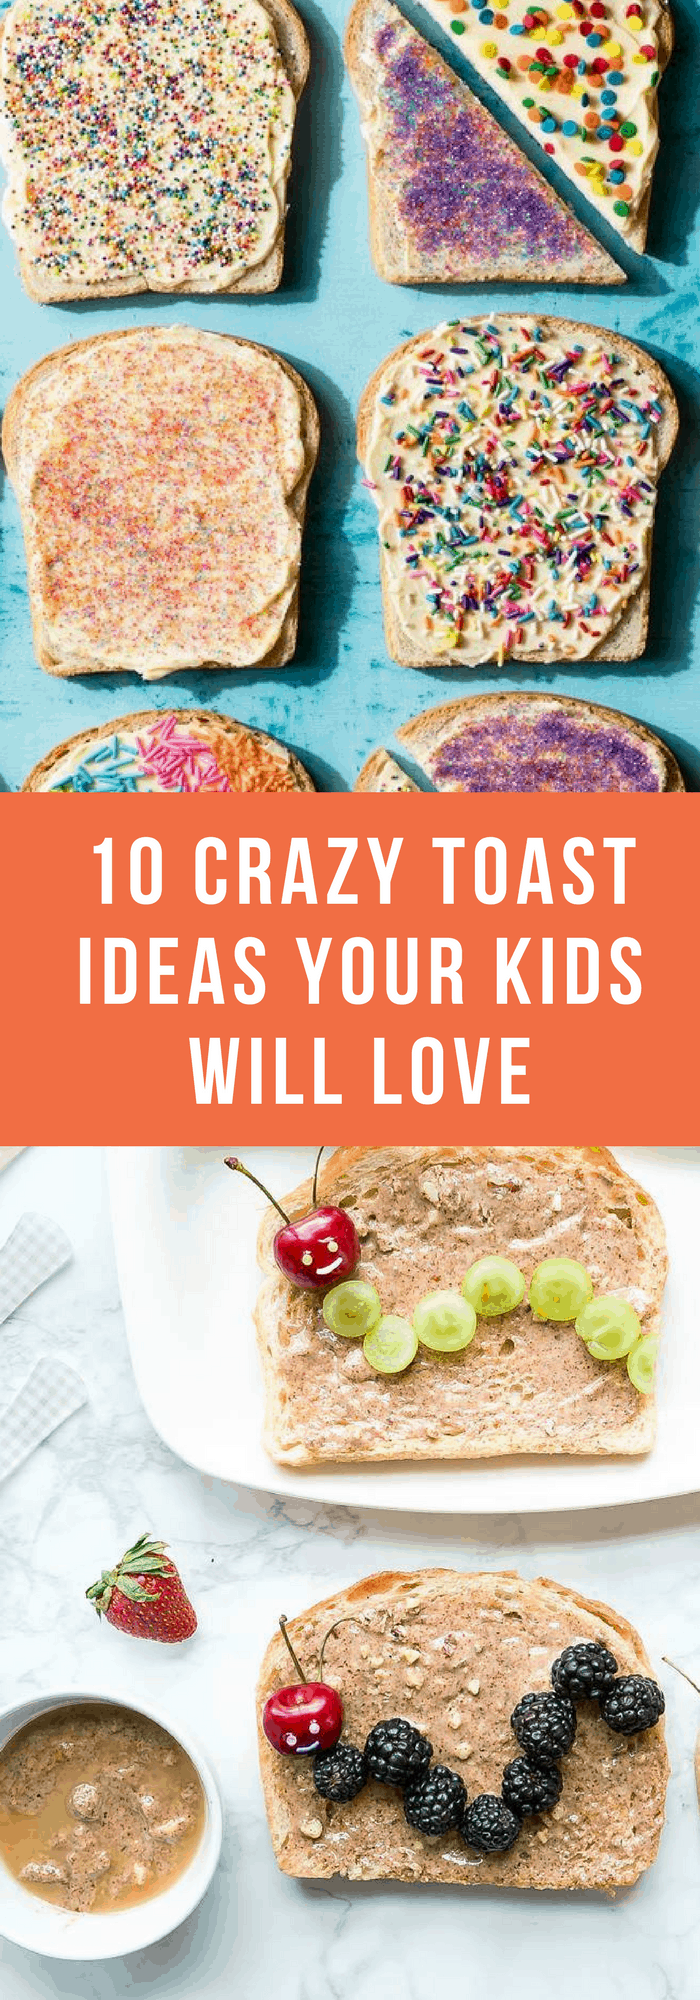 Cooking--10 Crazy Toast Ideas Your Kids Will Love--The Organized Mom